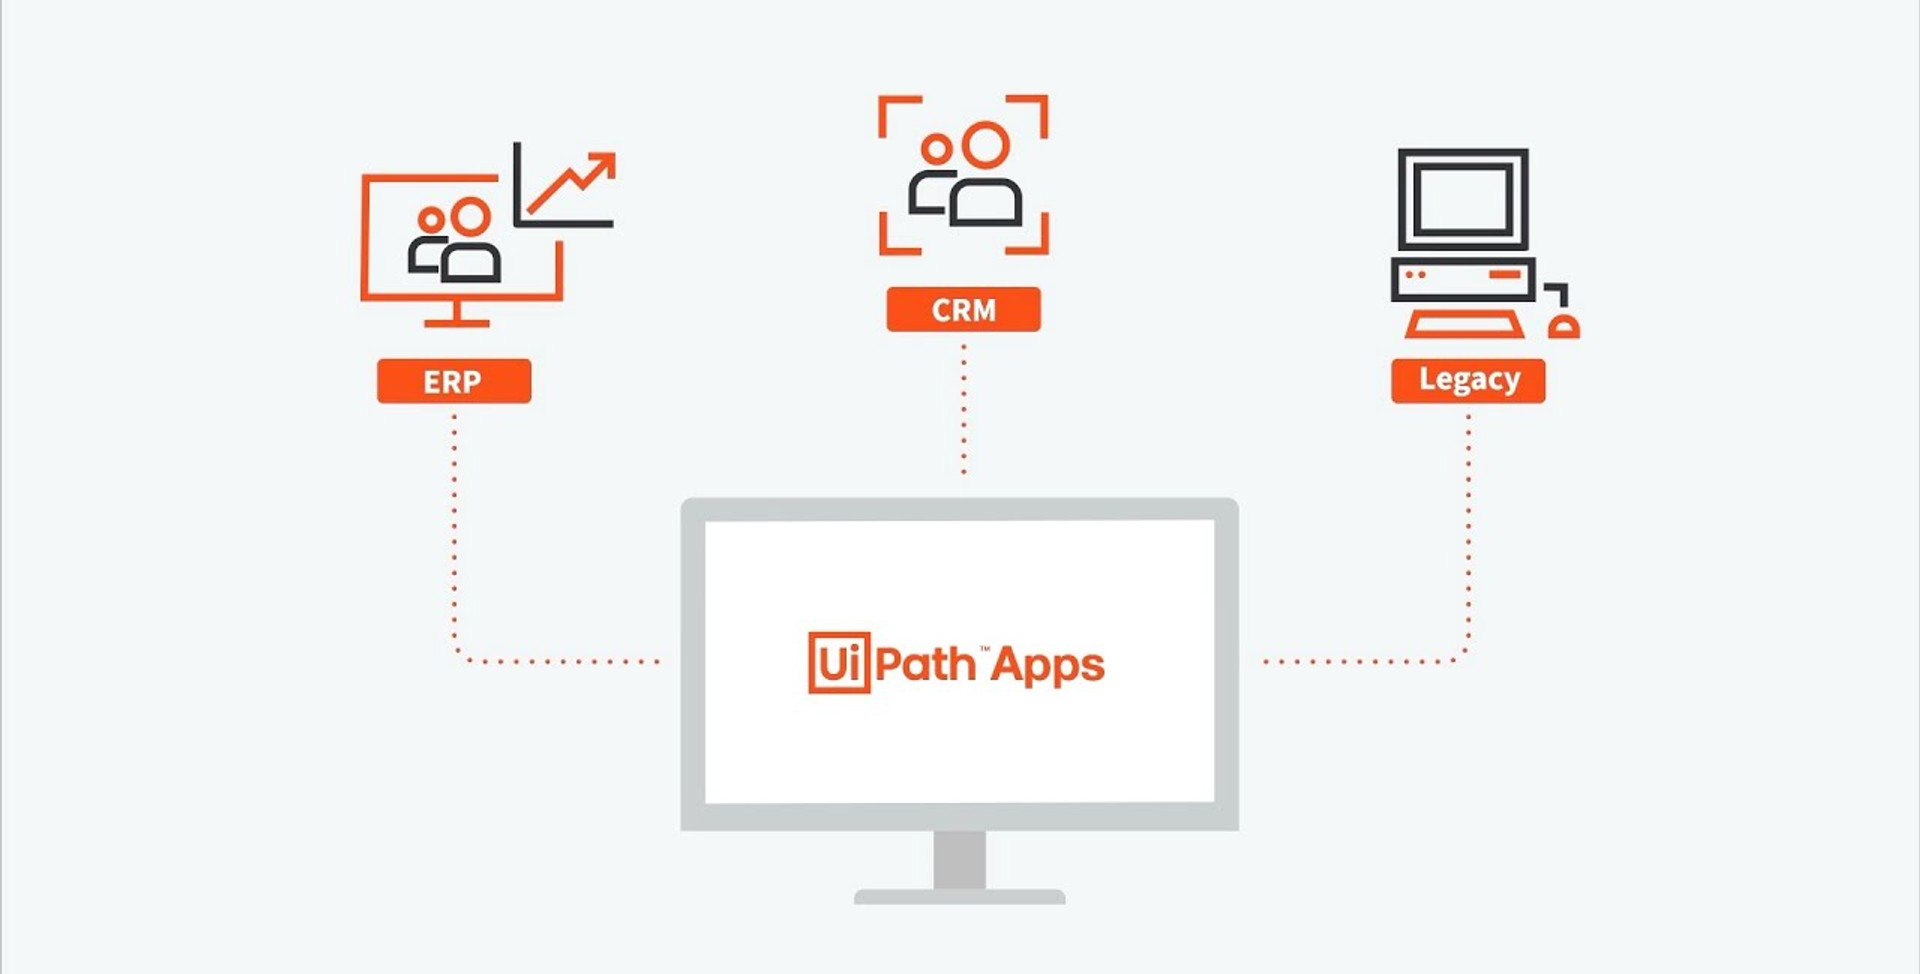 UiPath Low Code Apps